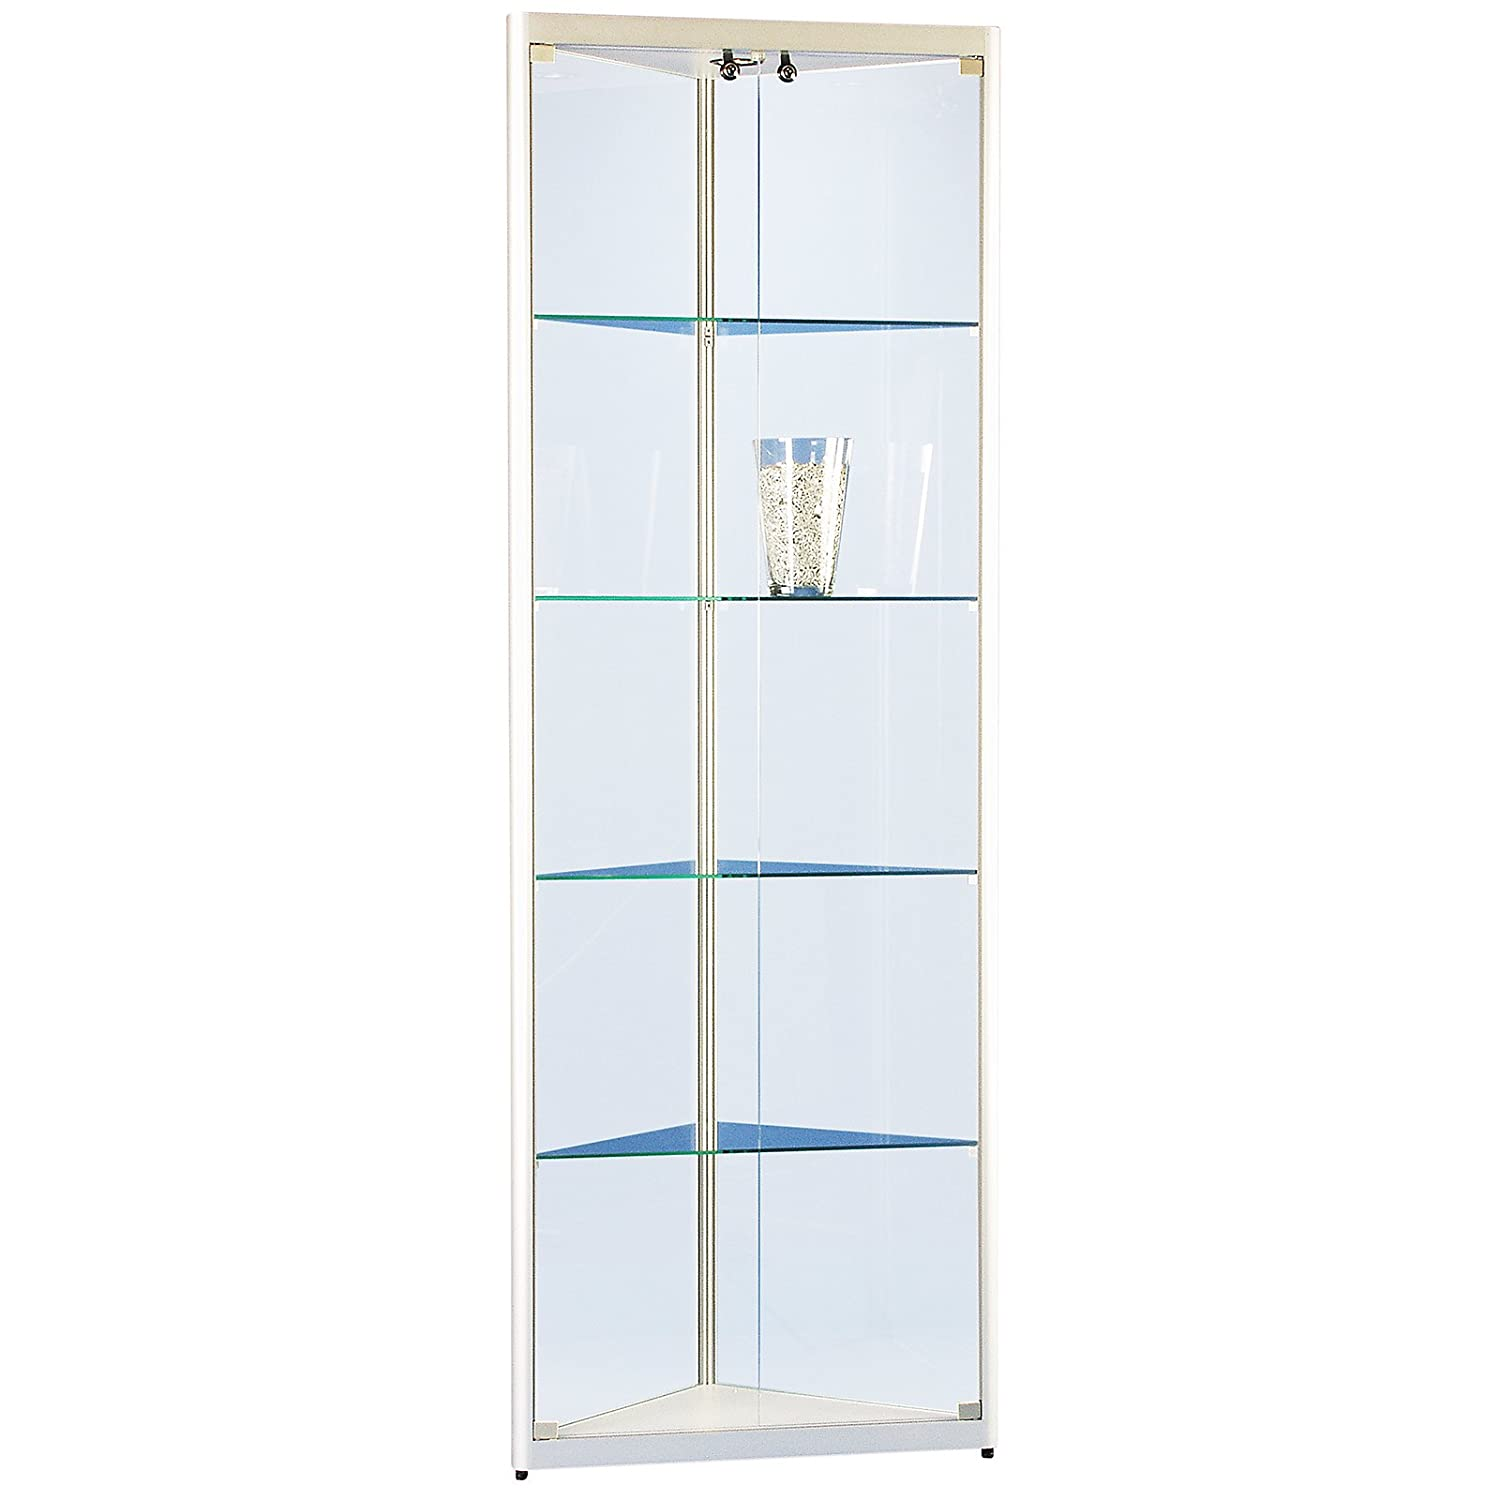 eckvitrine glasvitrine standvitrine sammlervitrine basic 500 alu glas beleuchtet abschlie bar. Black Bedroom Furniture Sets. Home Design Ideas